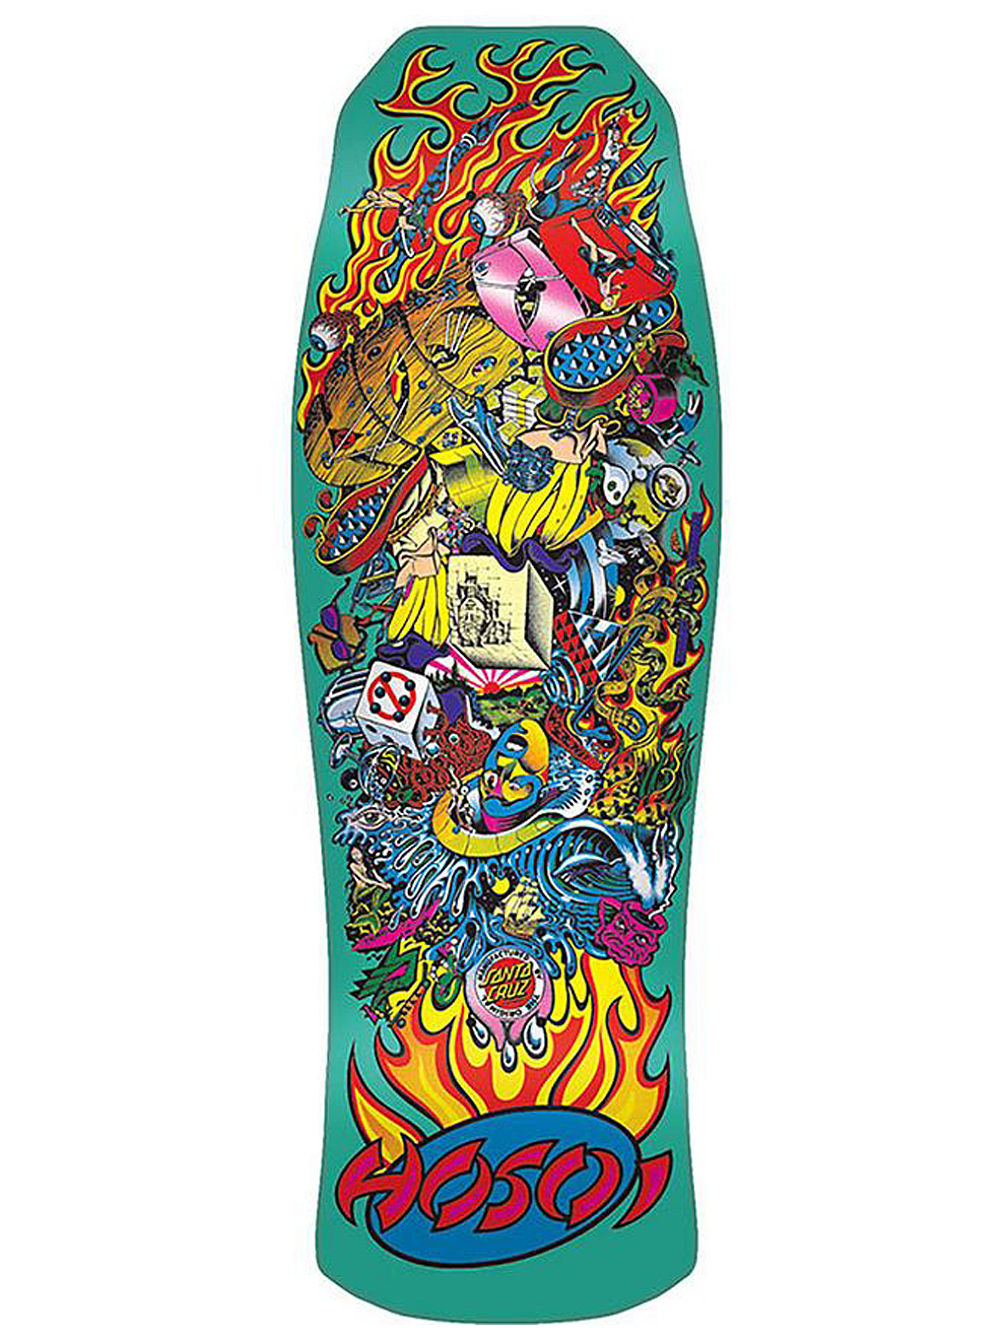 Hosoi Collage Candy Metallic Mint 10 Skate D